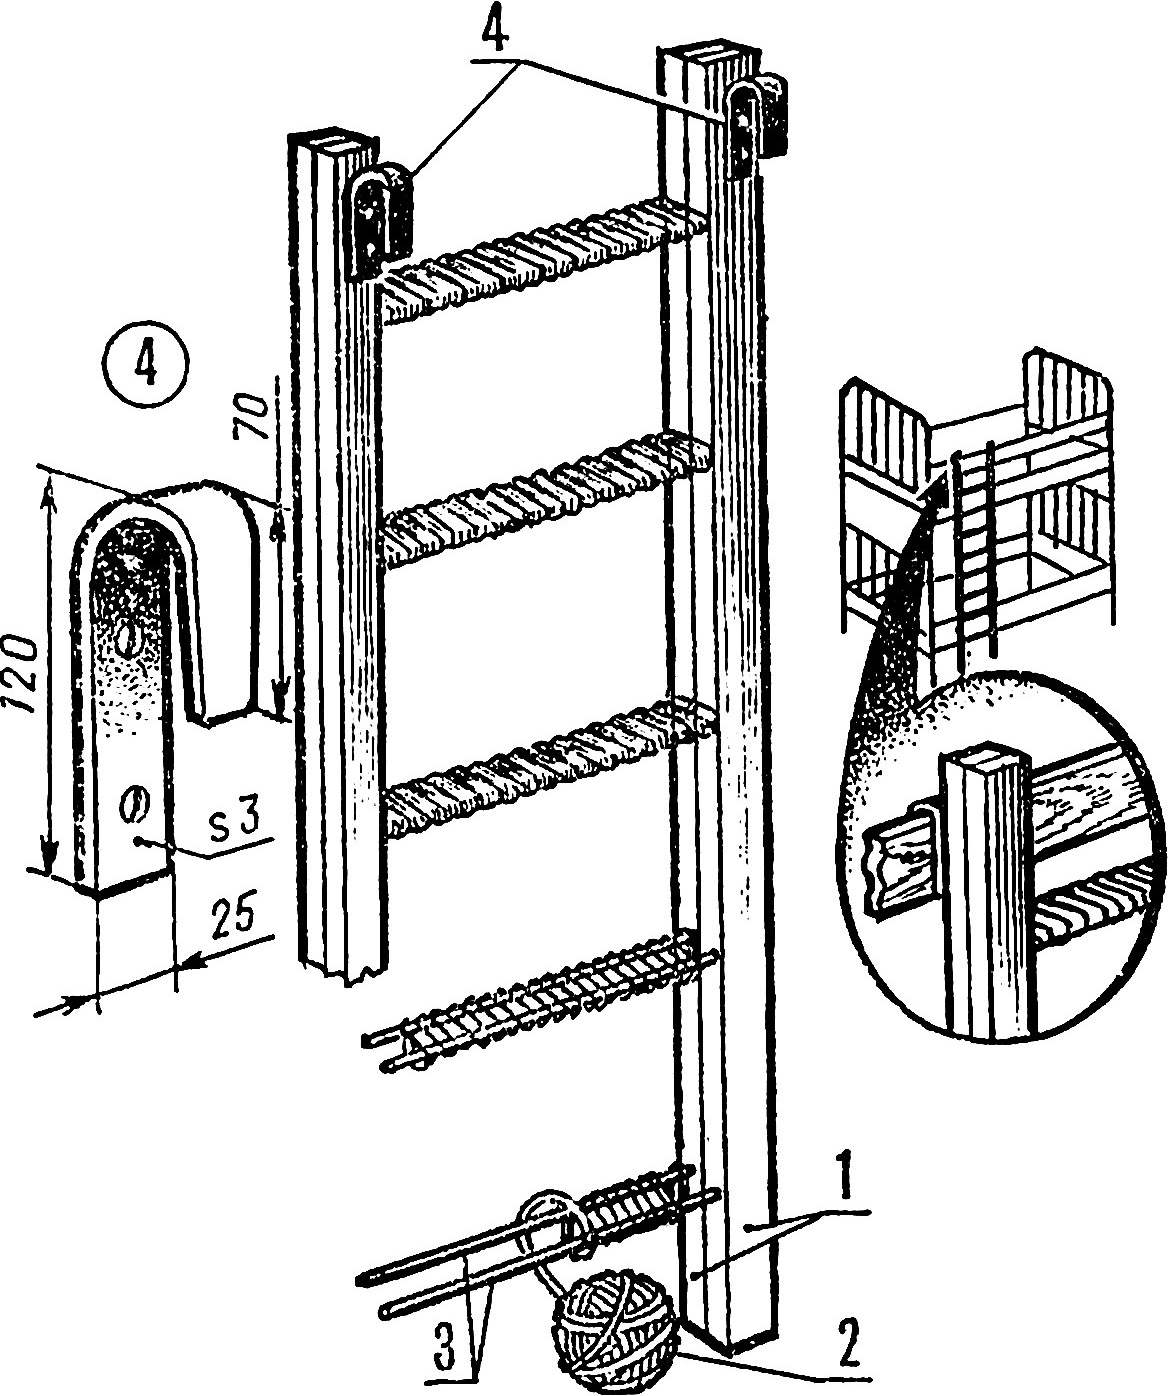 Fig. 3. A staircase from the side of the cot.